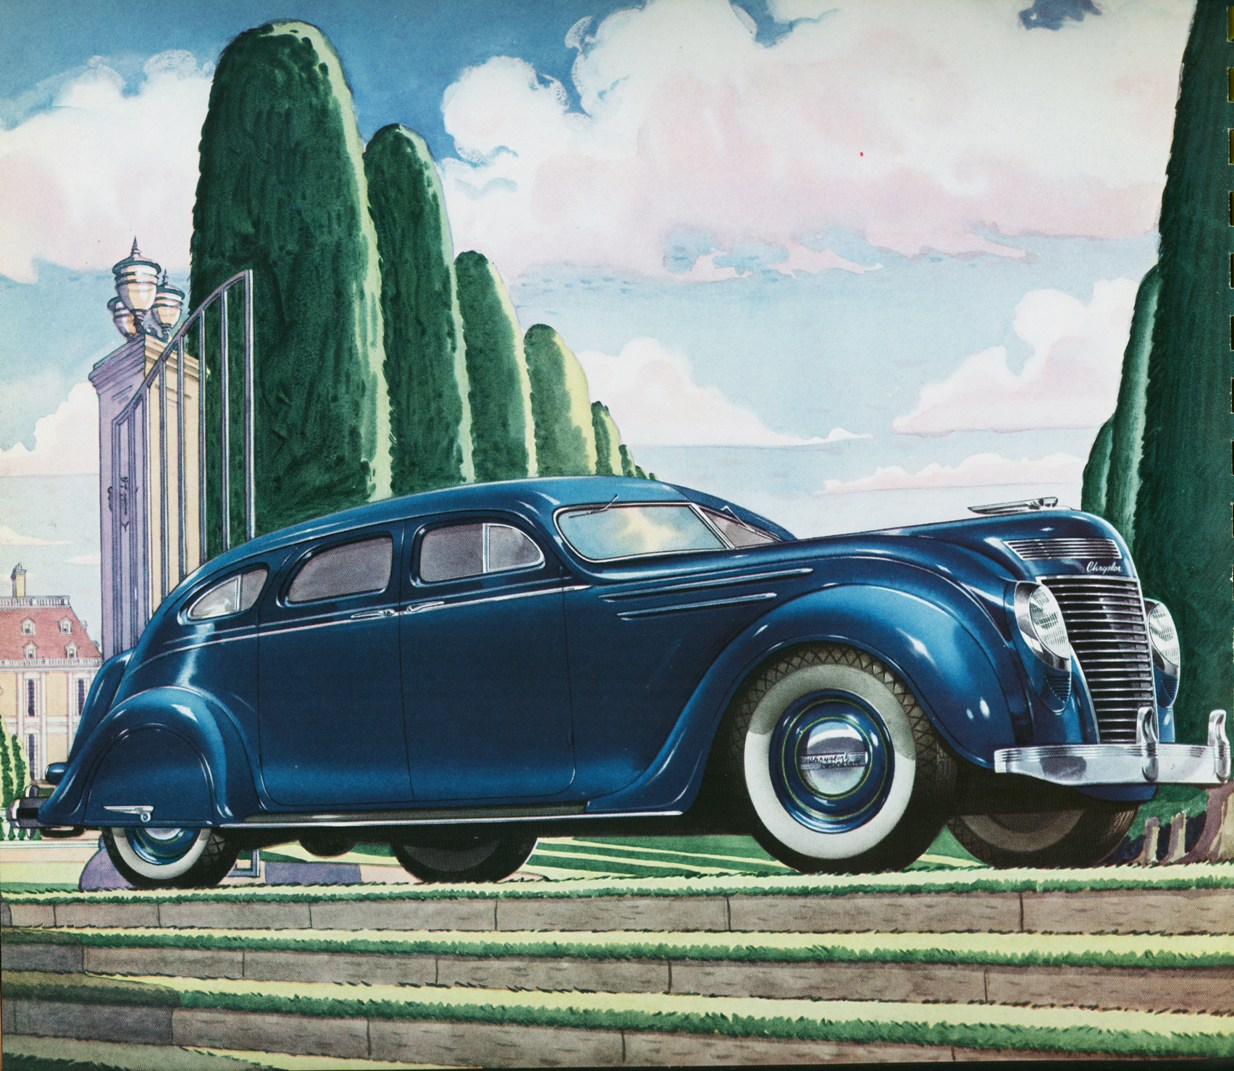 Chrysler airflow sedan